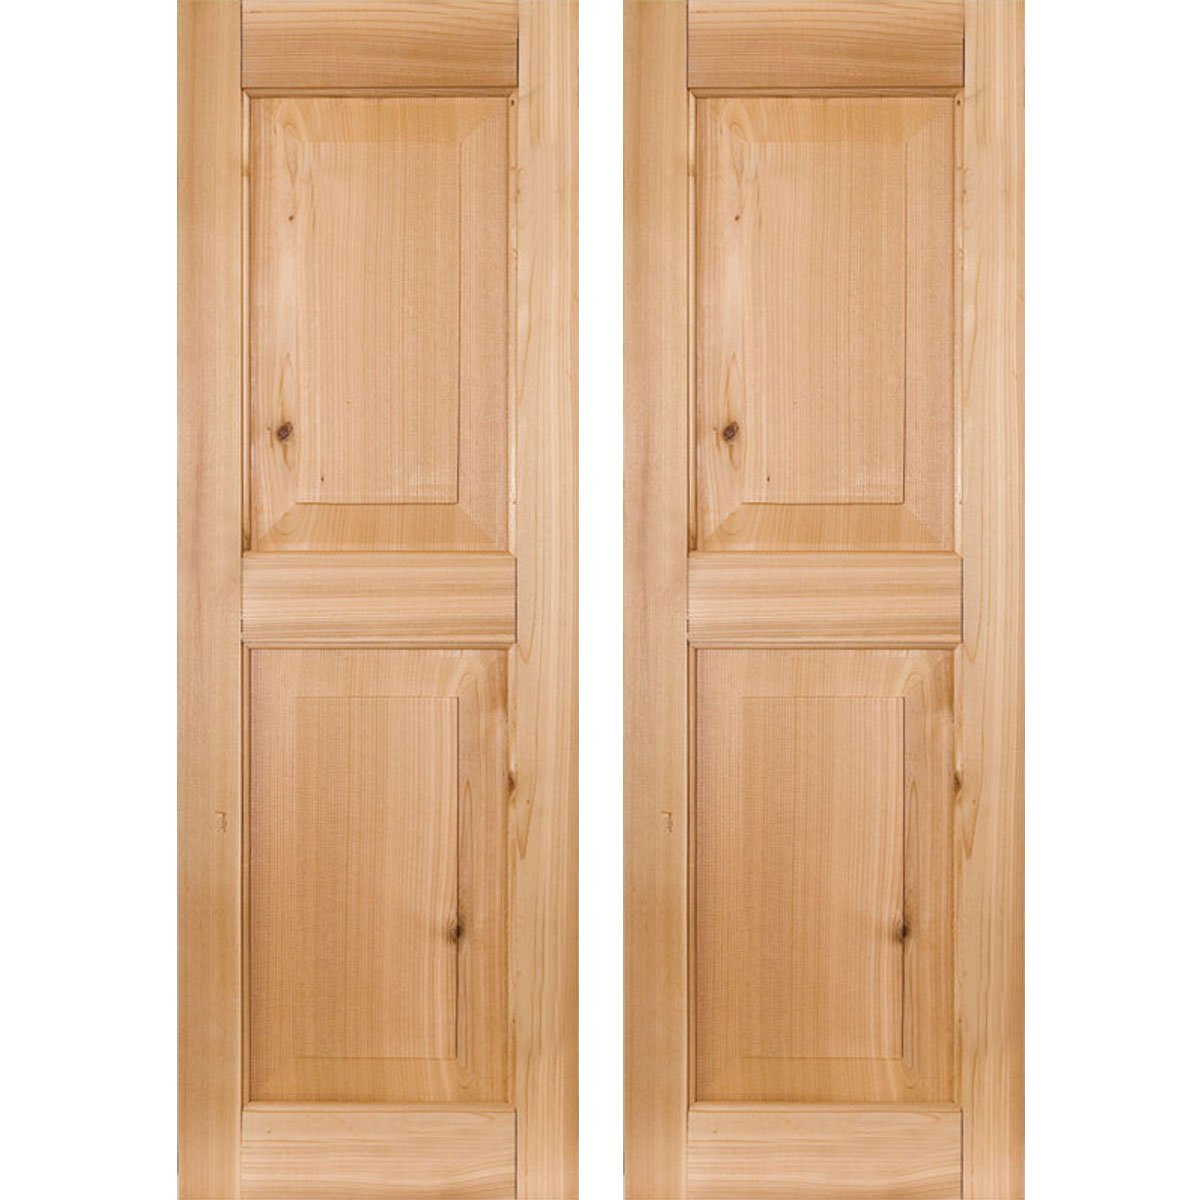 Ekena Millwork RWR15X025UNM Exterior Real Wood Sapele Mahogany Raised Panel  Shutters (Per Pair),